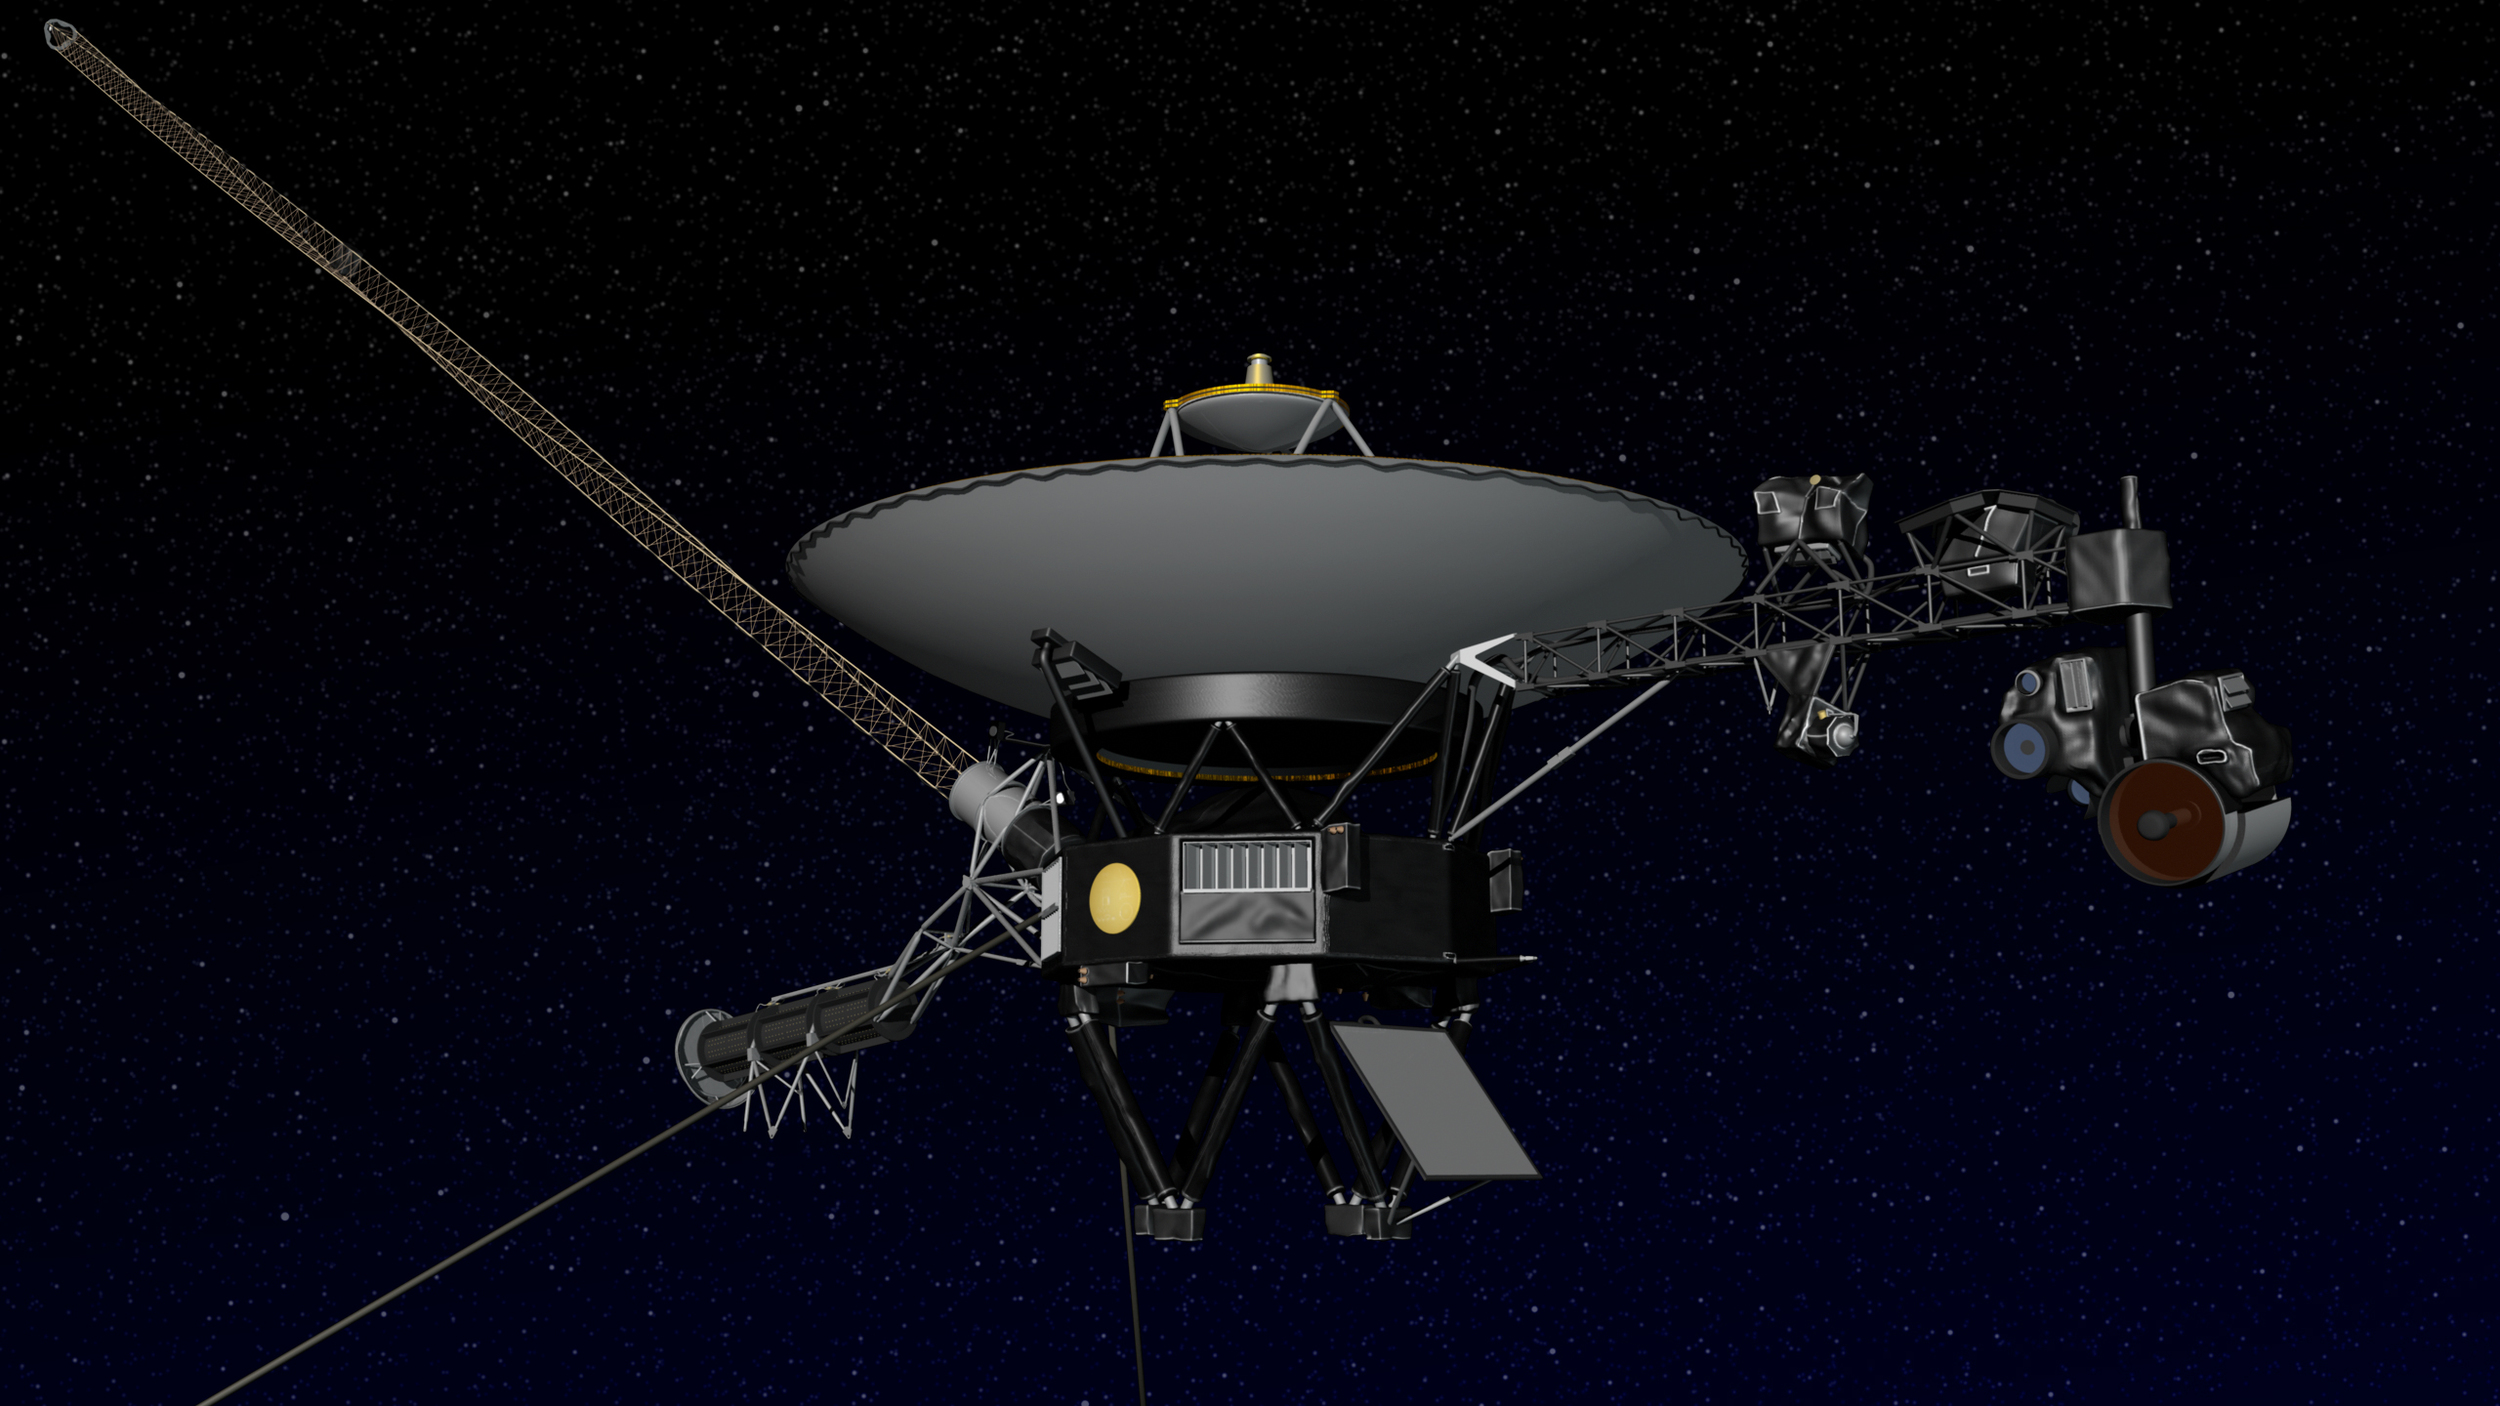 Artist concept of NASA's Voyager spacecraft. Image credit: NASA/JPL-Caltech